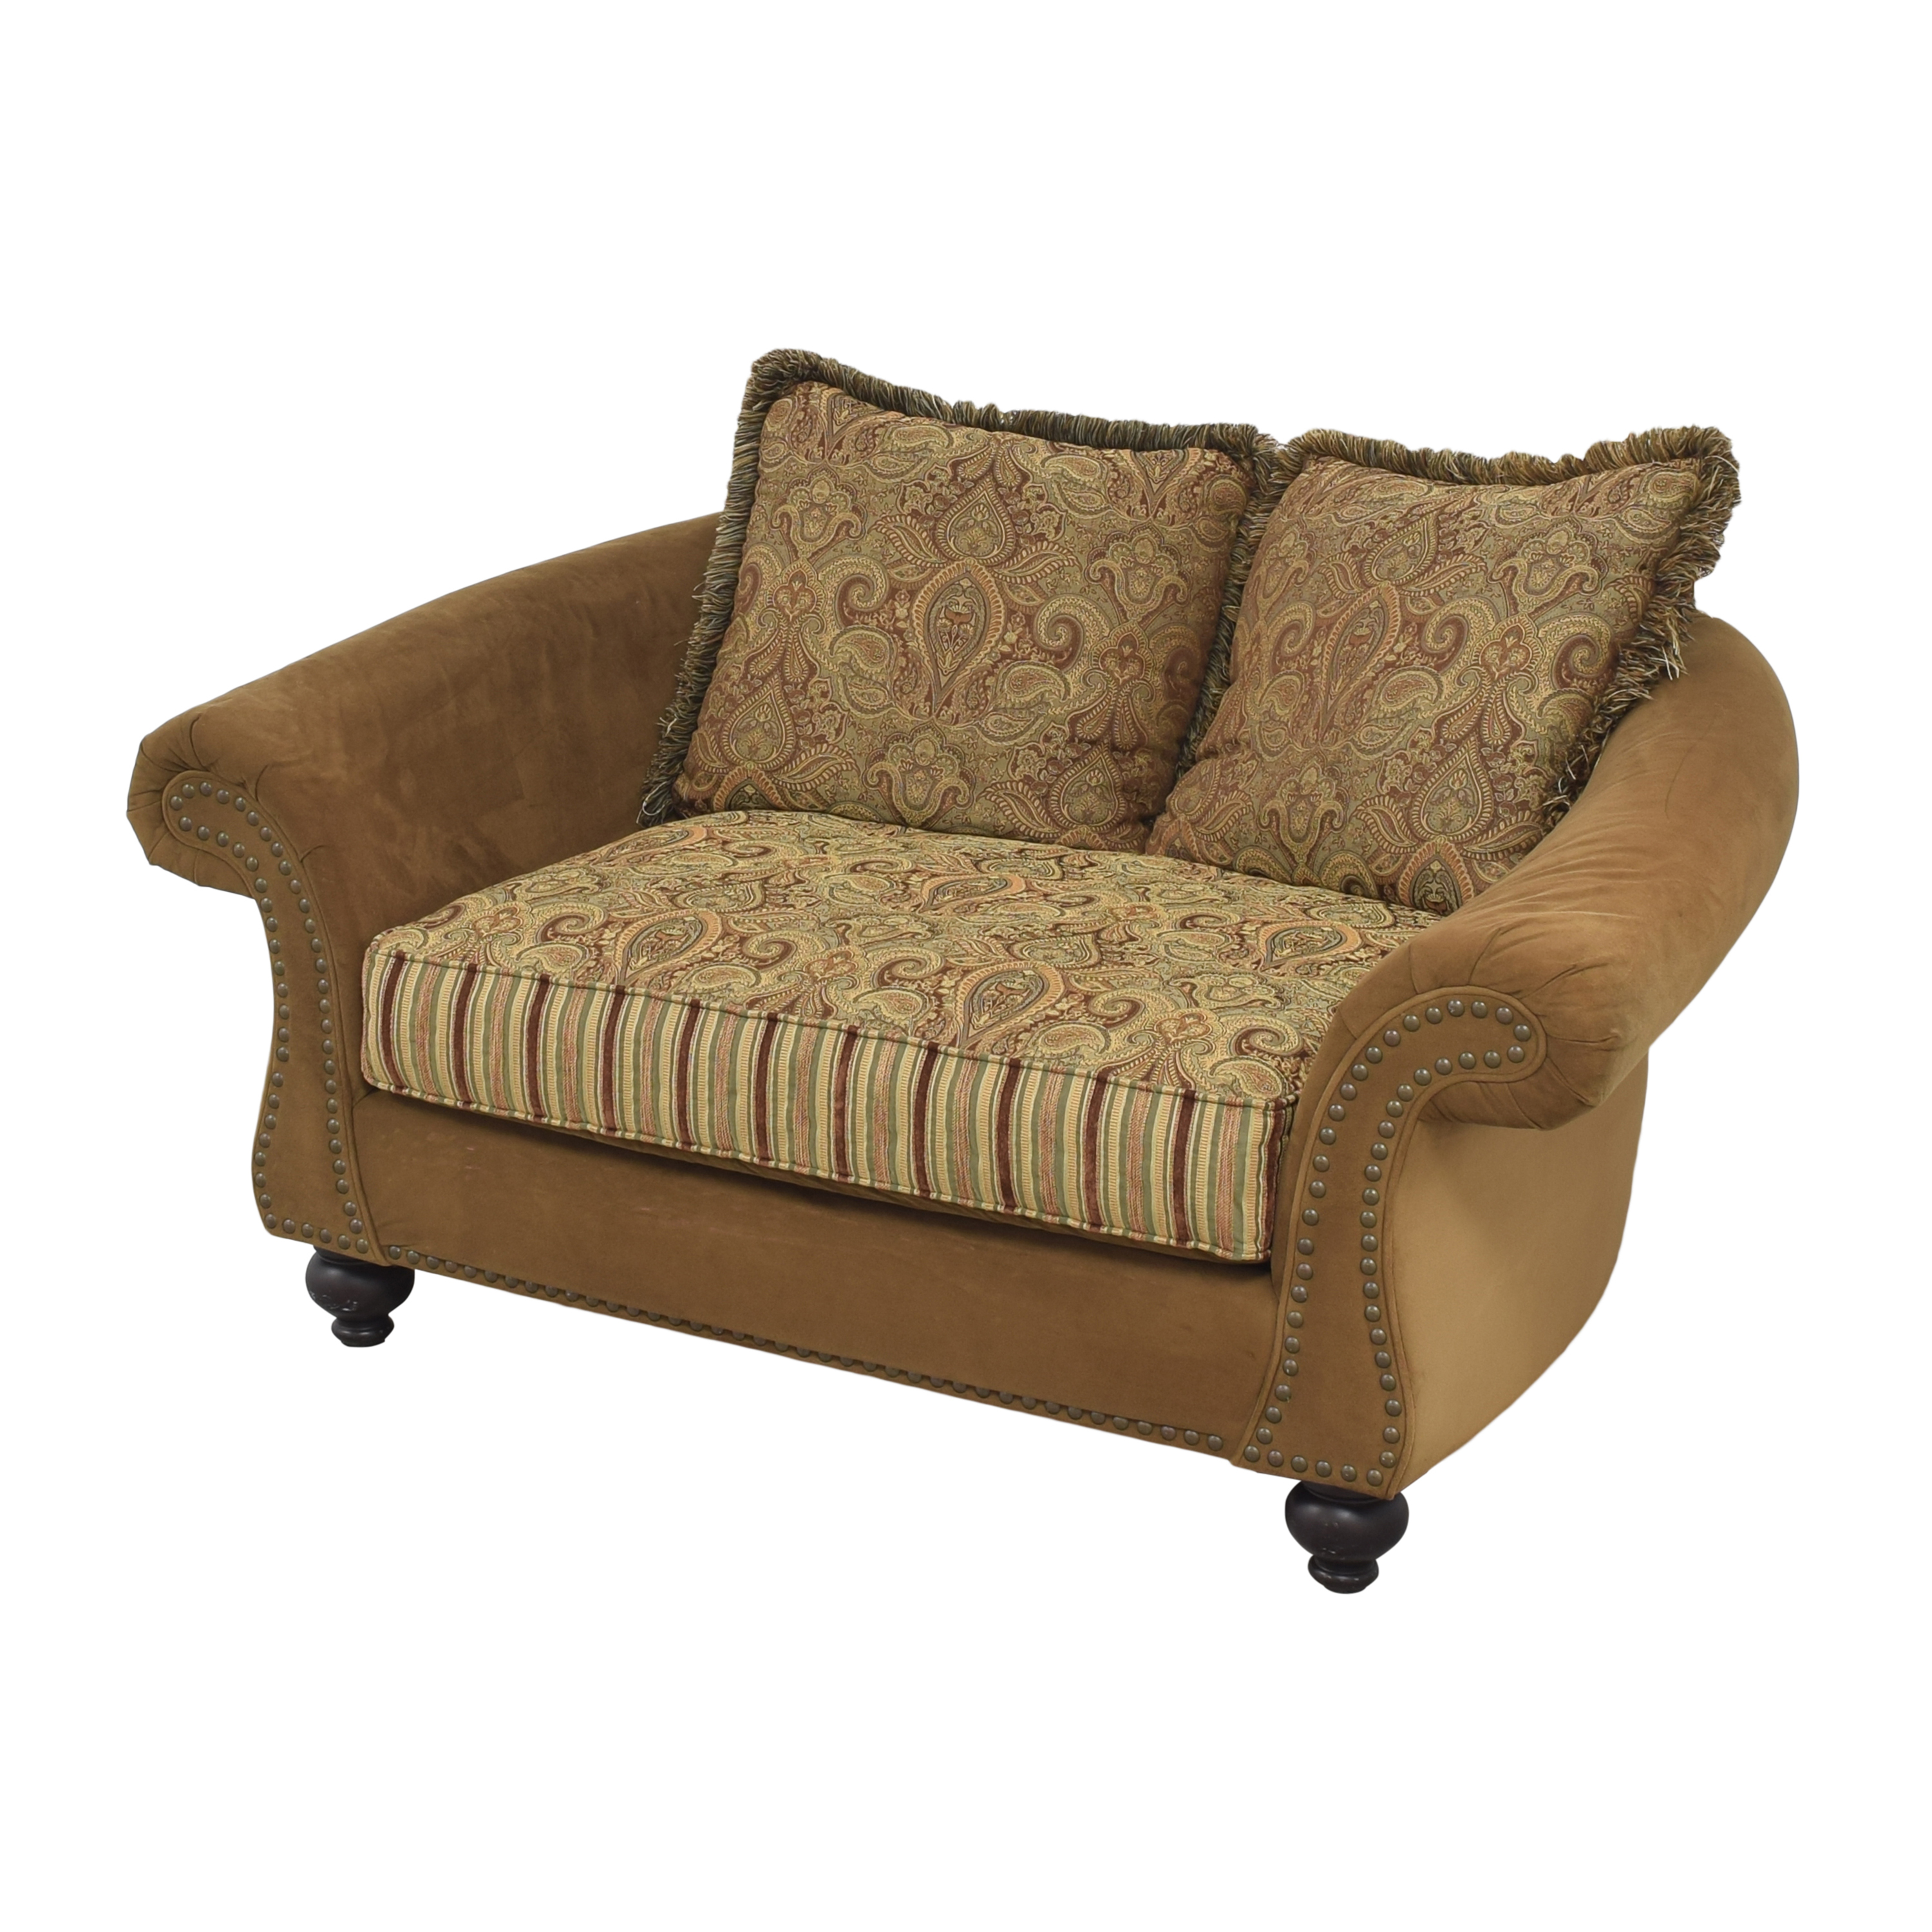 Raymour & Flanigan Raymour & Flanigan Valencia Chair by Cindy Crawford Home on sale